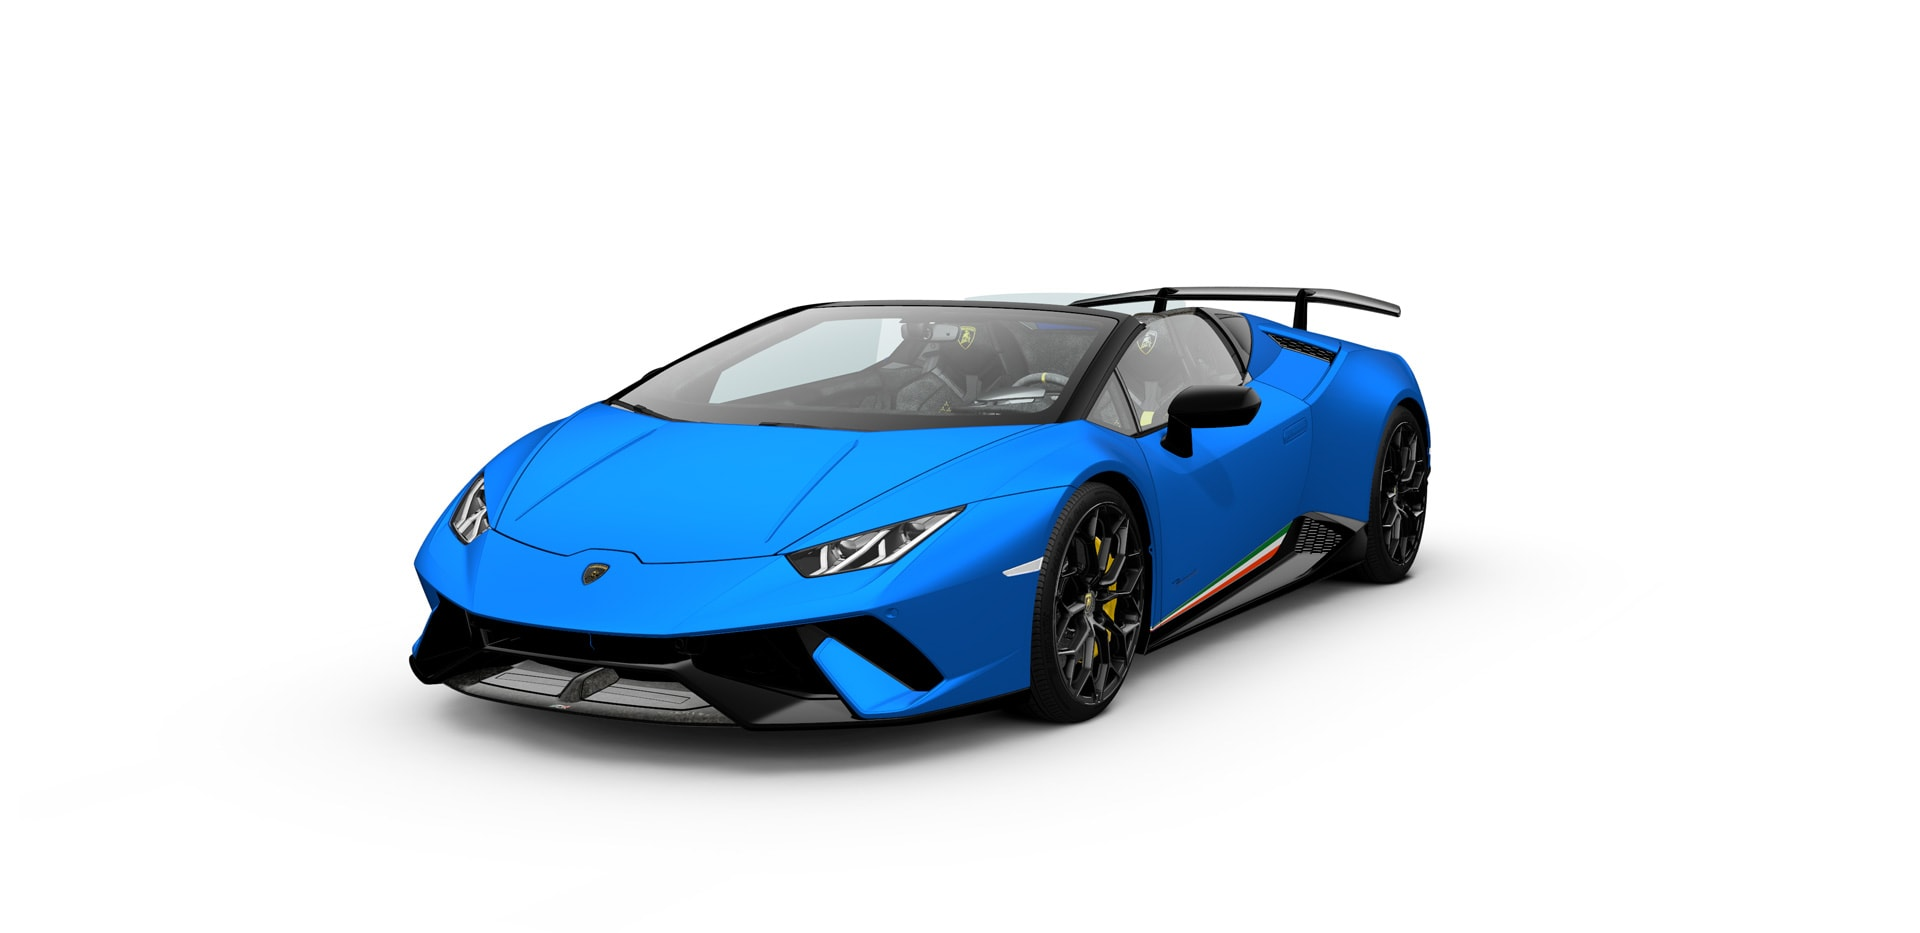 Lamborghini Huracán Performante Spyder, Technical